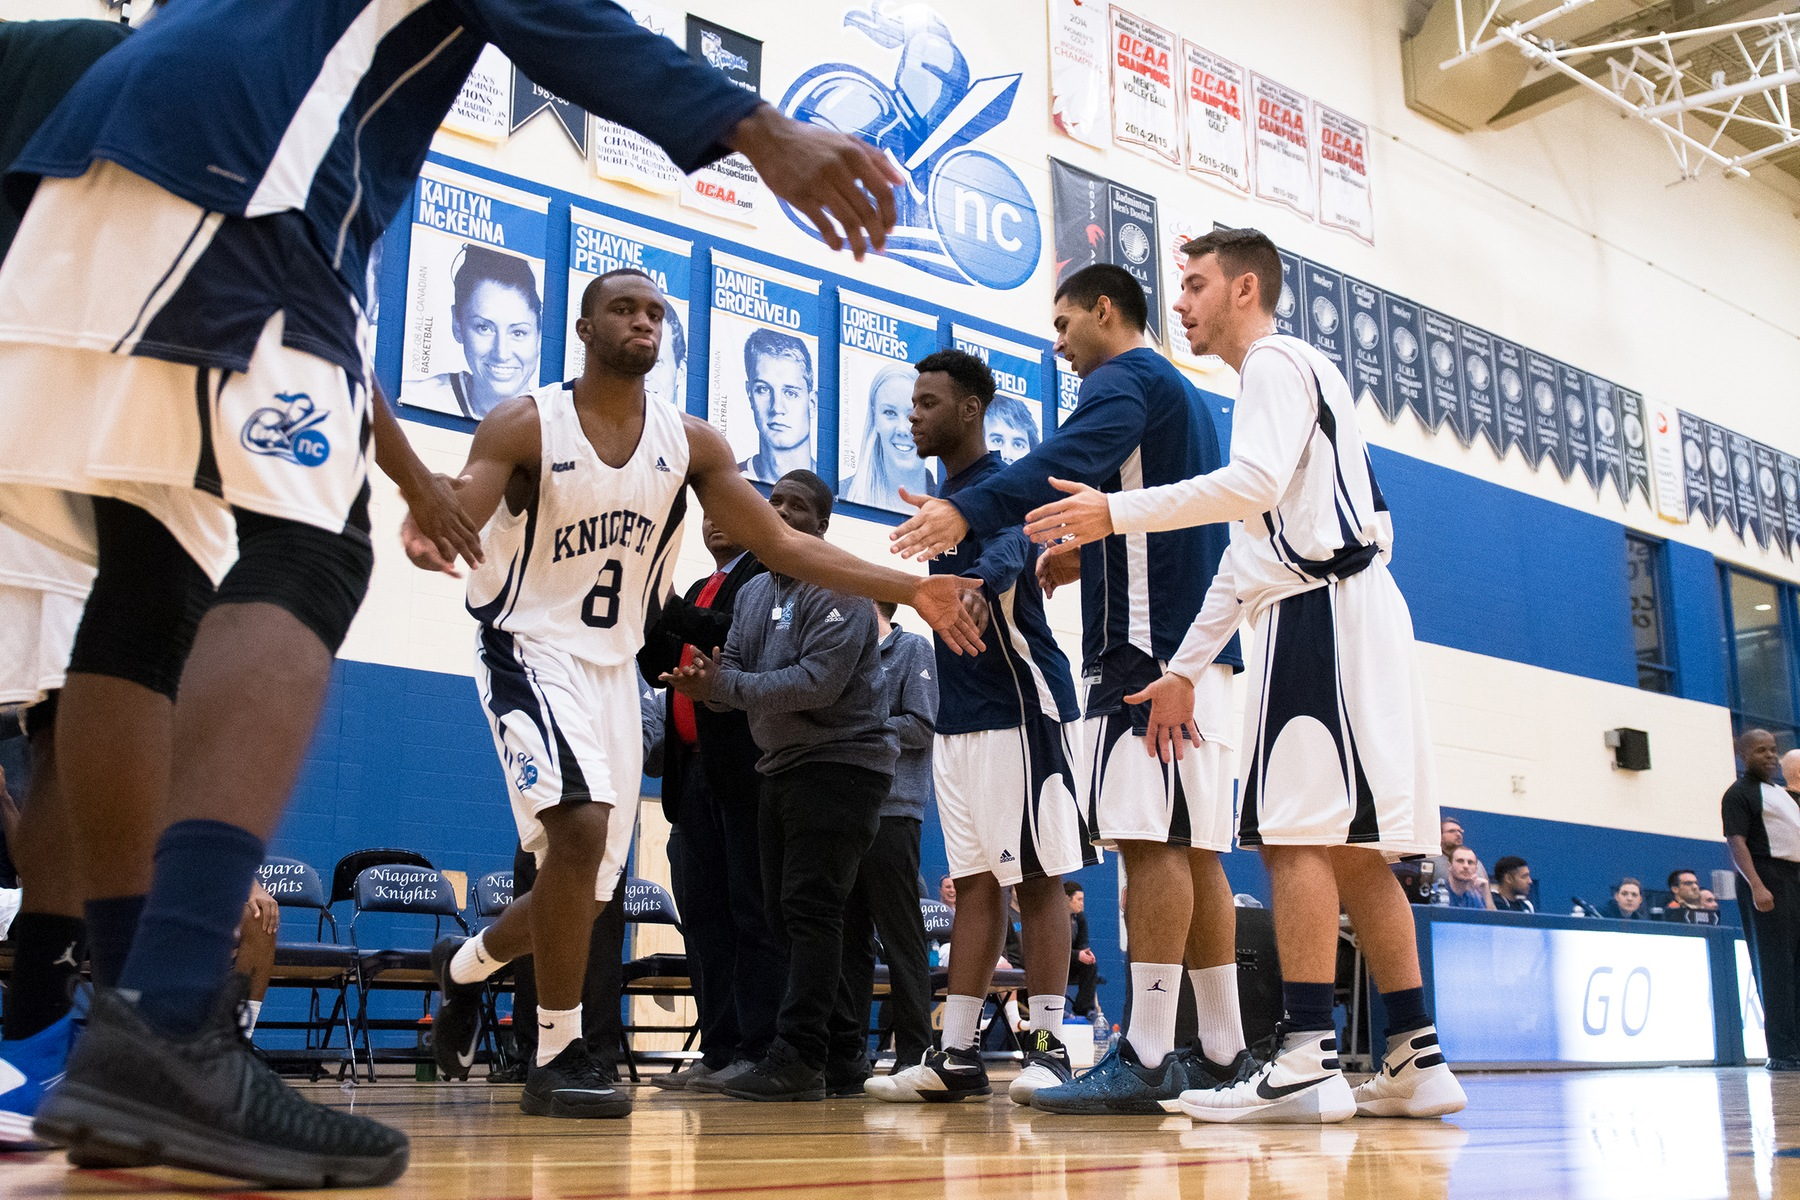 PREVIEW: No. 3 Knights men's basketball set to battle No. 7 Humber Hawks